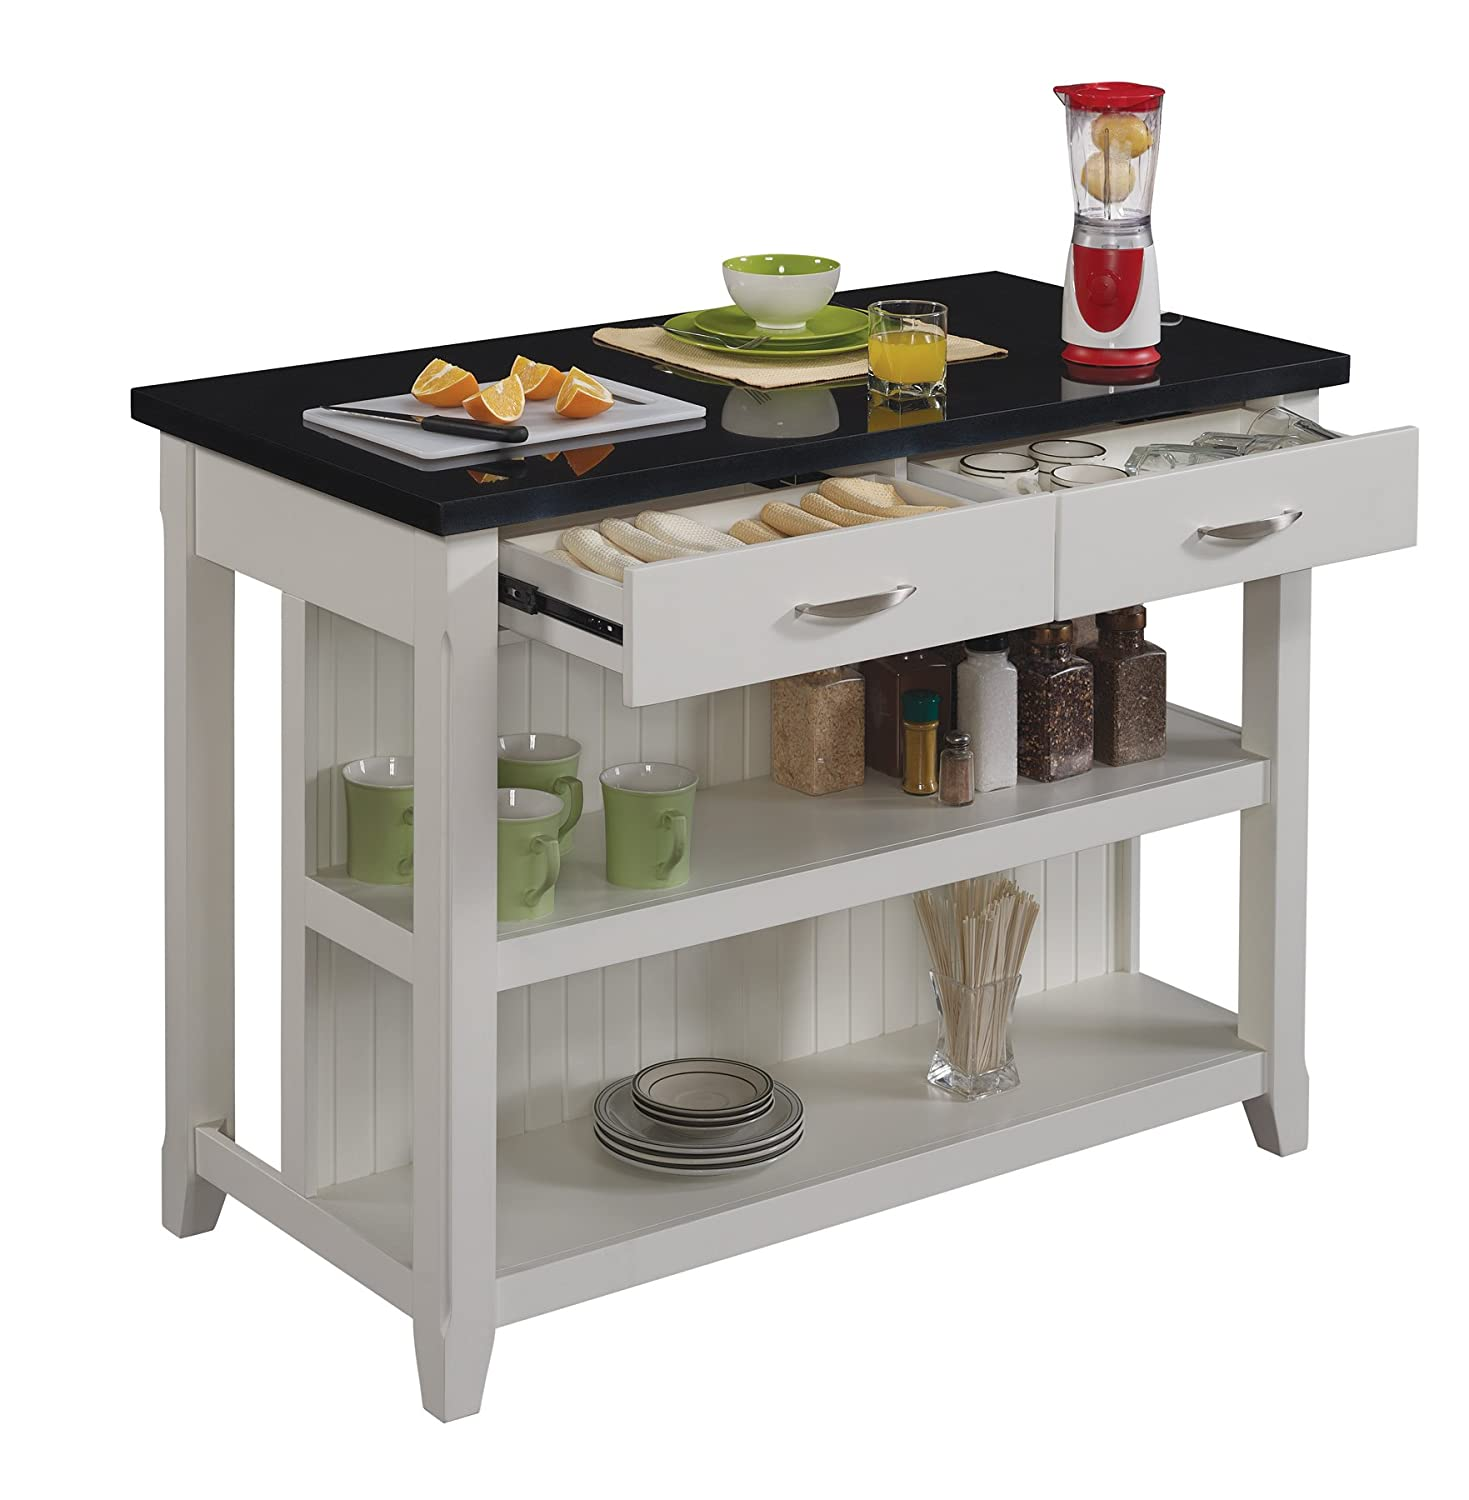 Amazon Bell O KI 48 T401 The Server Kitchen Island with